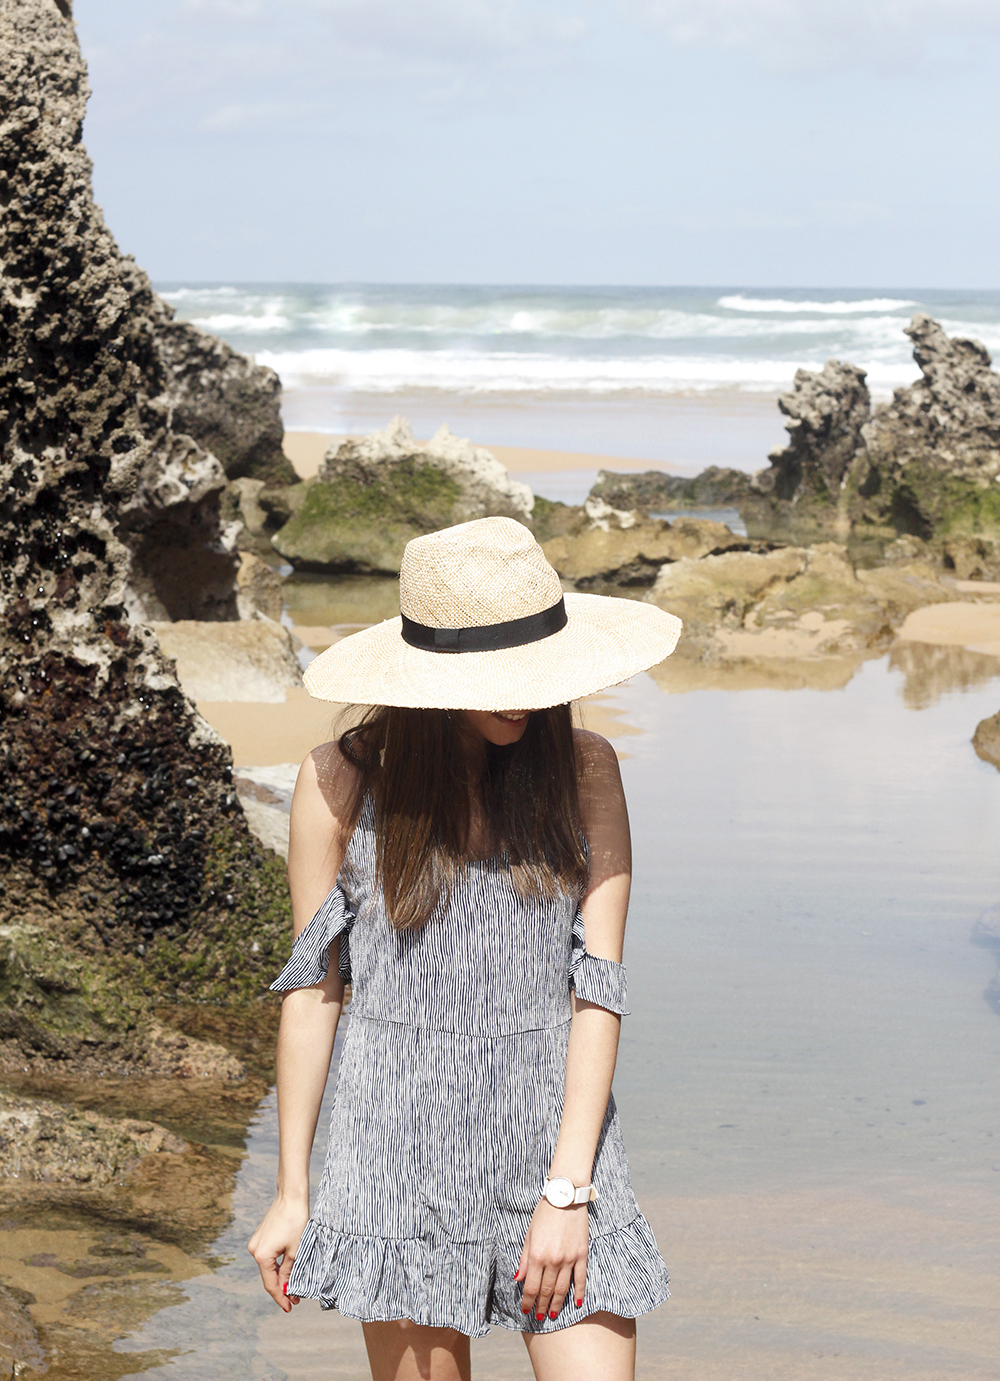 striped jumpsuit beach days vacation hat summer outfit style fashion11